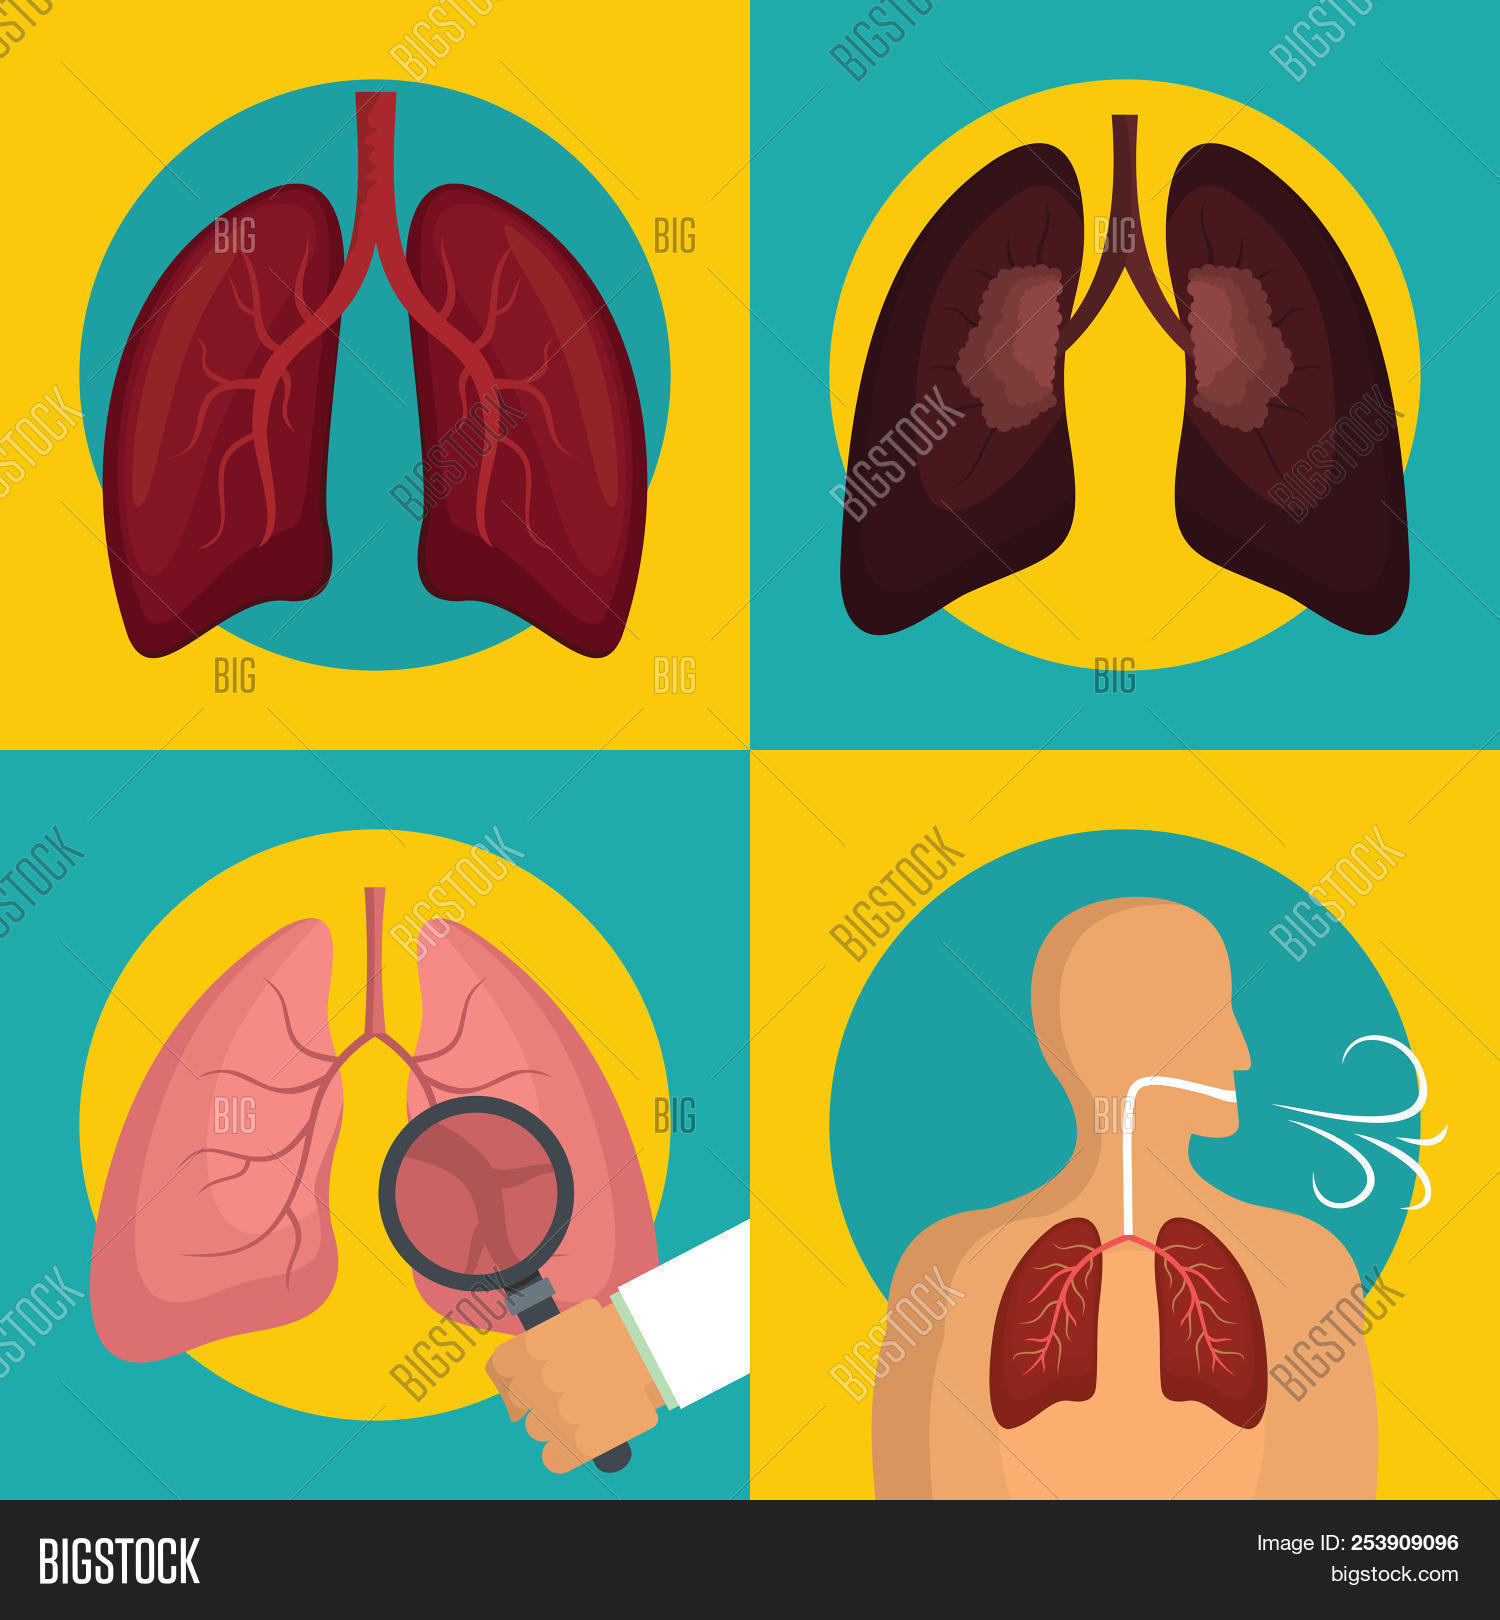 air,alveolar,anatomy,asthma,banner,biology,body,breath,breathe,breathing,bronchi,cancer,care,chest,cigarette,color,colorful,diagnosis,disease,exhalation,flat,health,healthcare,healthy,human,icon,illness,illustration,internal,lung,medical,medicine,organ,oxygen,pneumonia,pulmonary,respiration,respiratory,science,screening,set,sign,smoke,symbol,system,tobacco,trachea